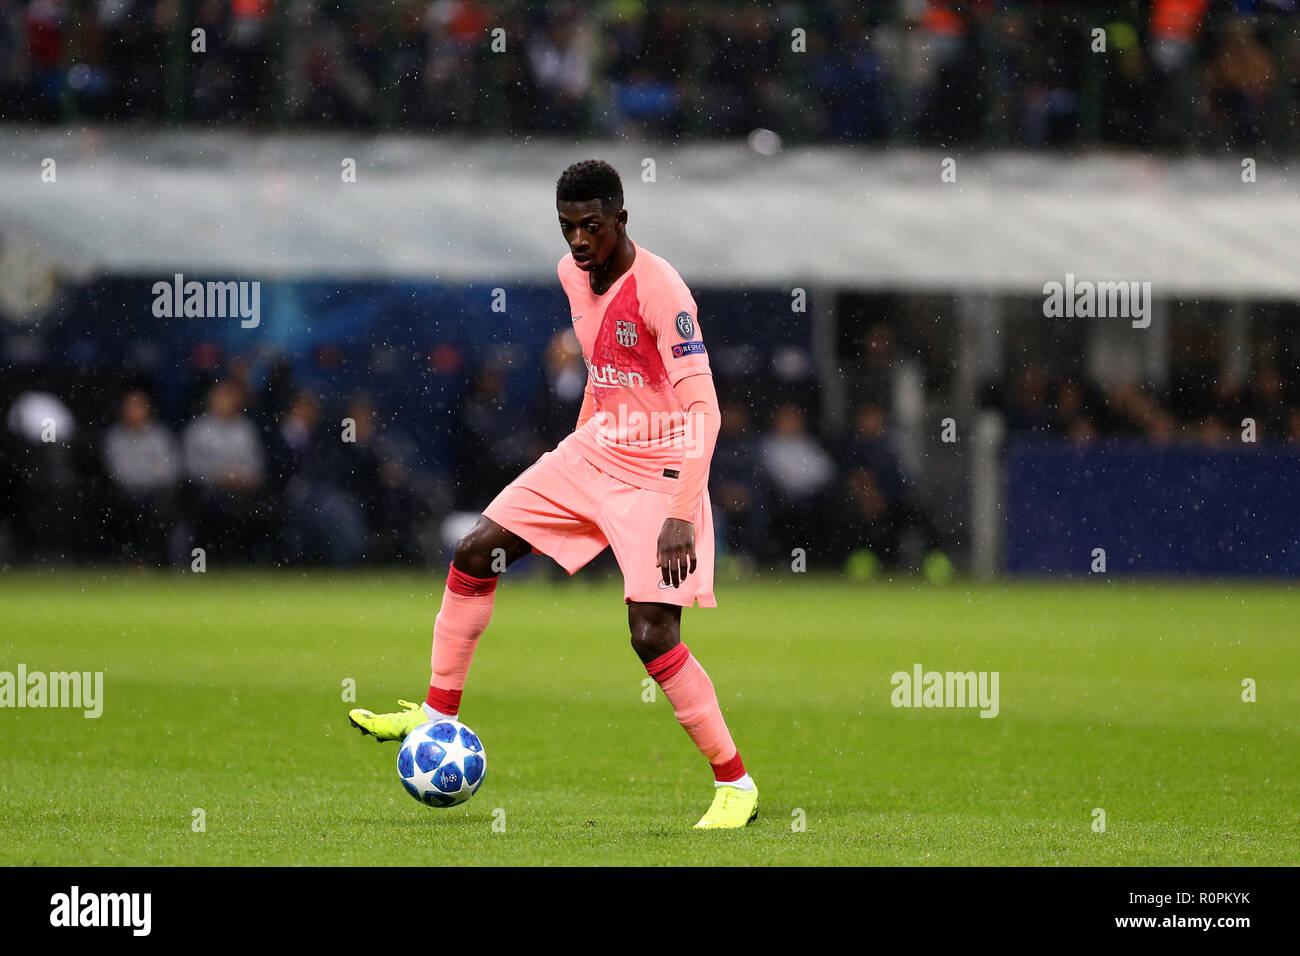 Milano, Italy. 6th November, 2018.  Ousmane Dembelè of Fc Barcelona in action during Uefa Champions League  Group B match  between FC Internazionale and Fc Barcelona. Credit: Marco Canoniero/Alamy Live News - Stock Image